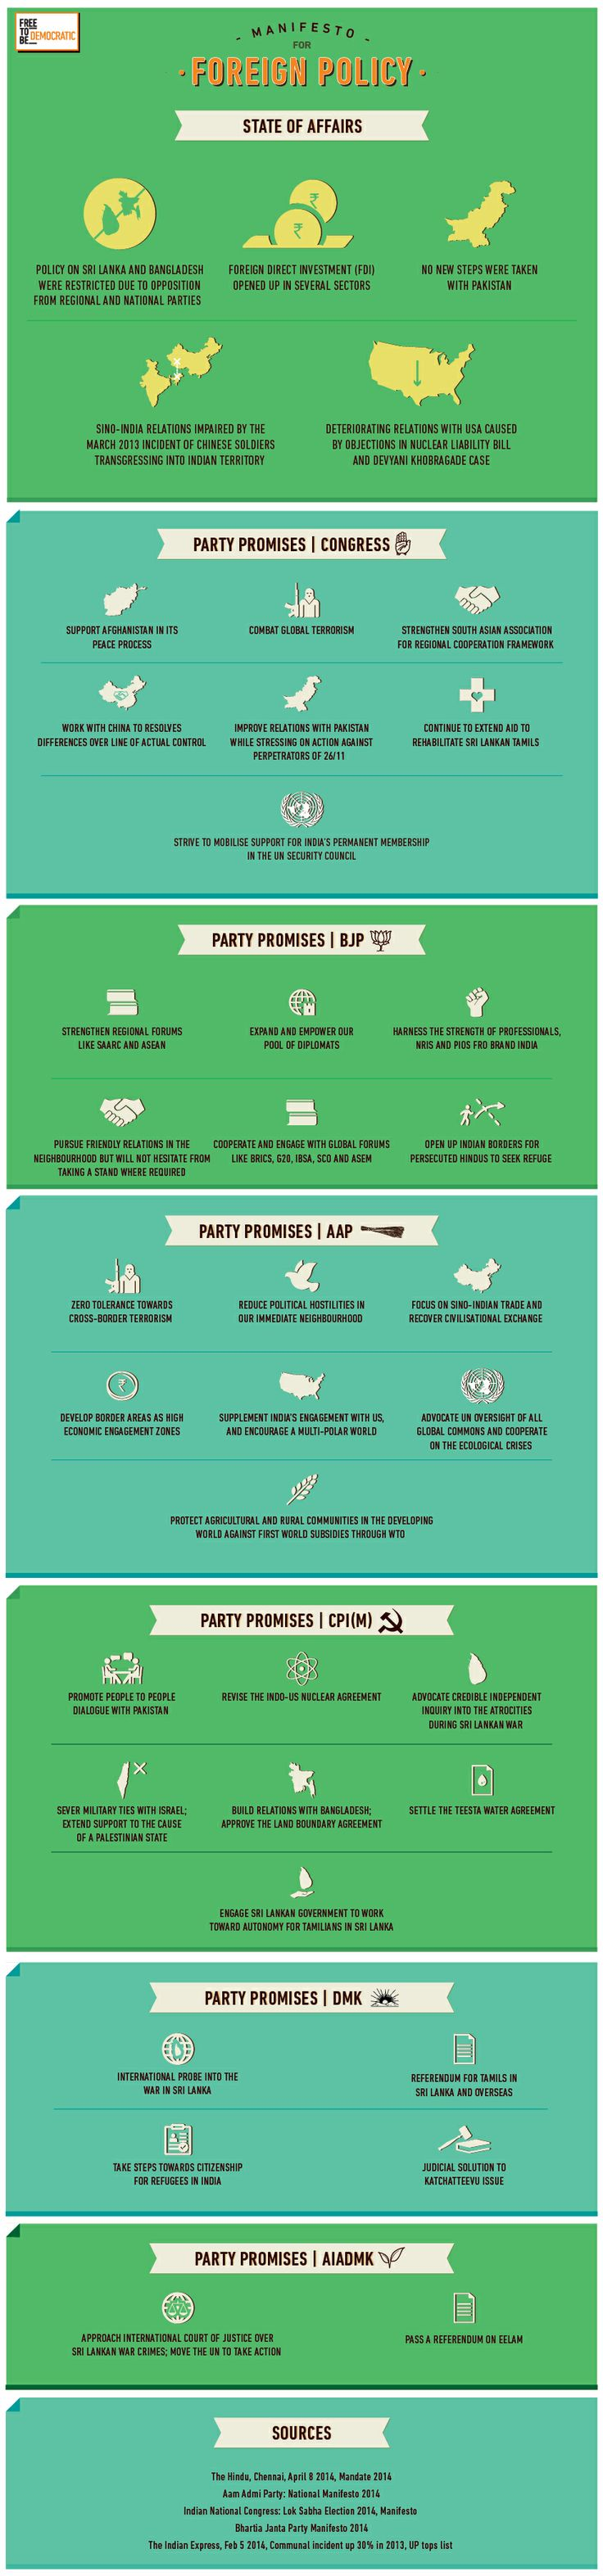 Ideas on foreign policy as noted down by parties on their manifestos for the on going 2014 general elections  #Elections2014